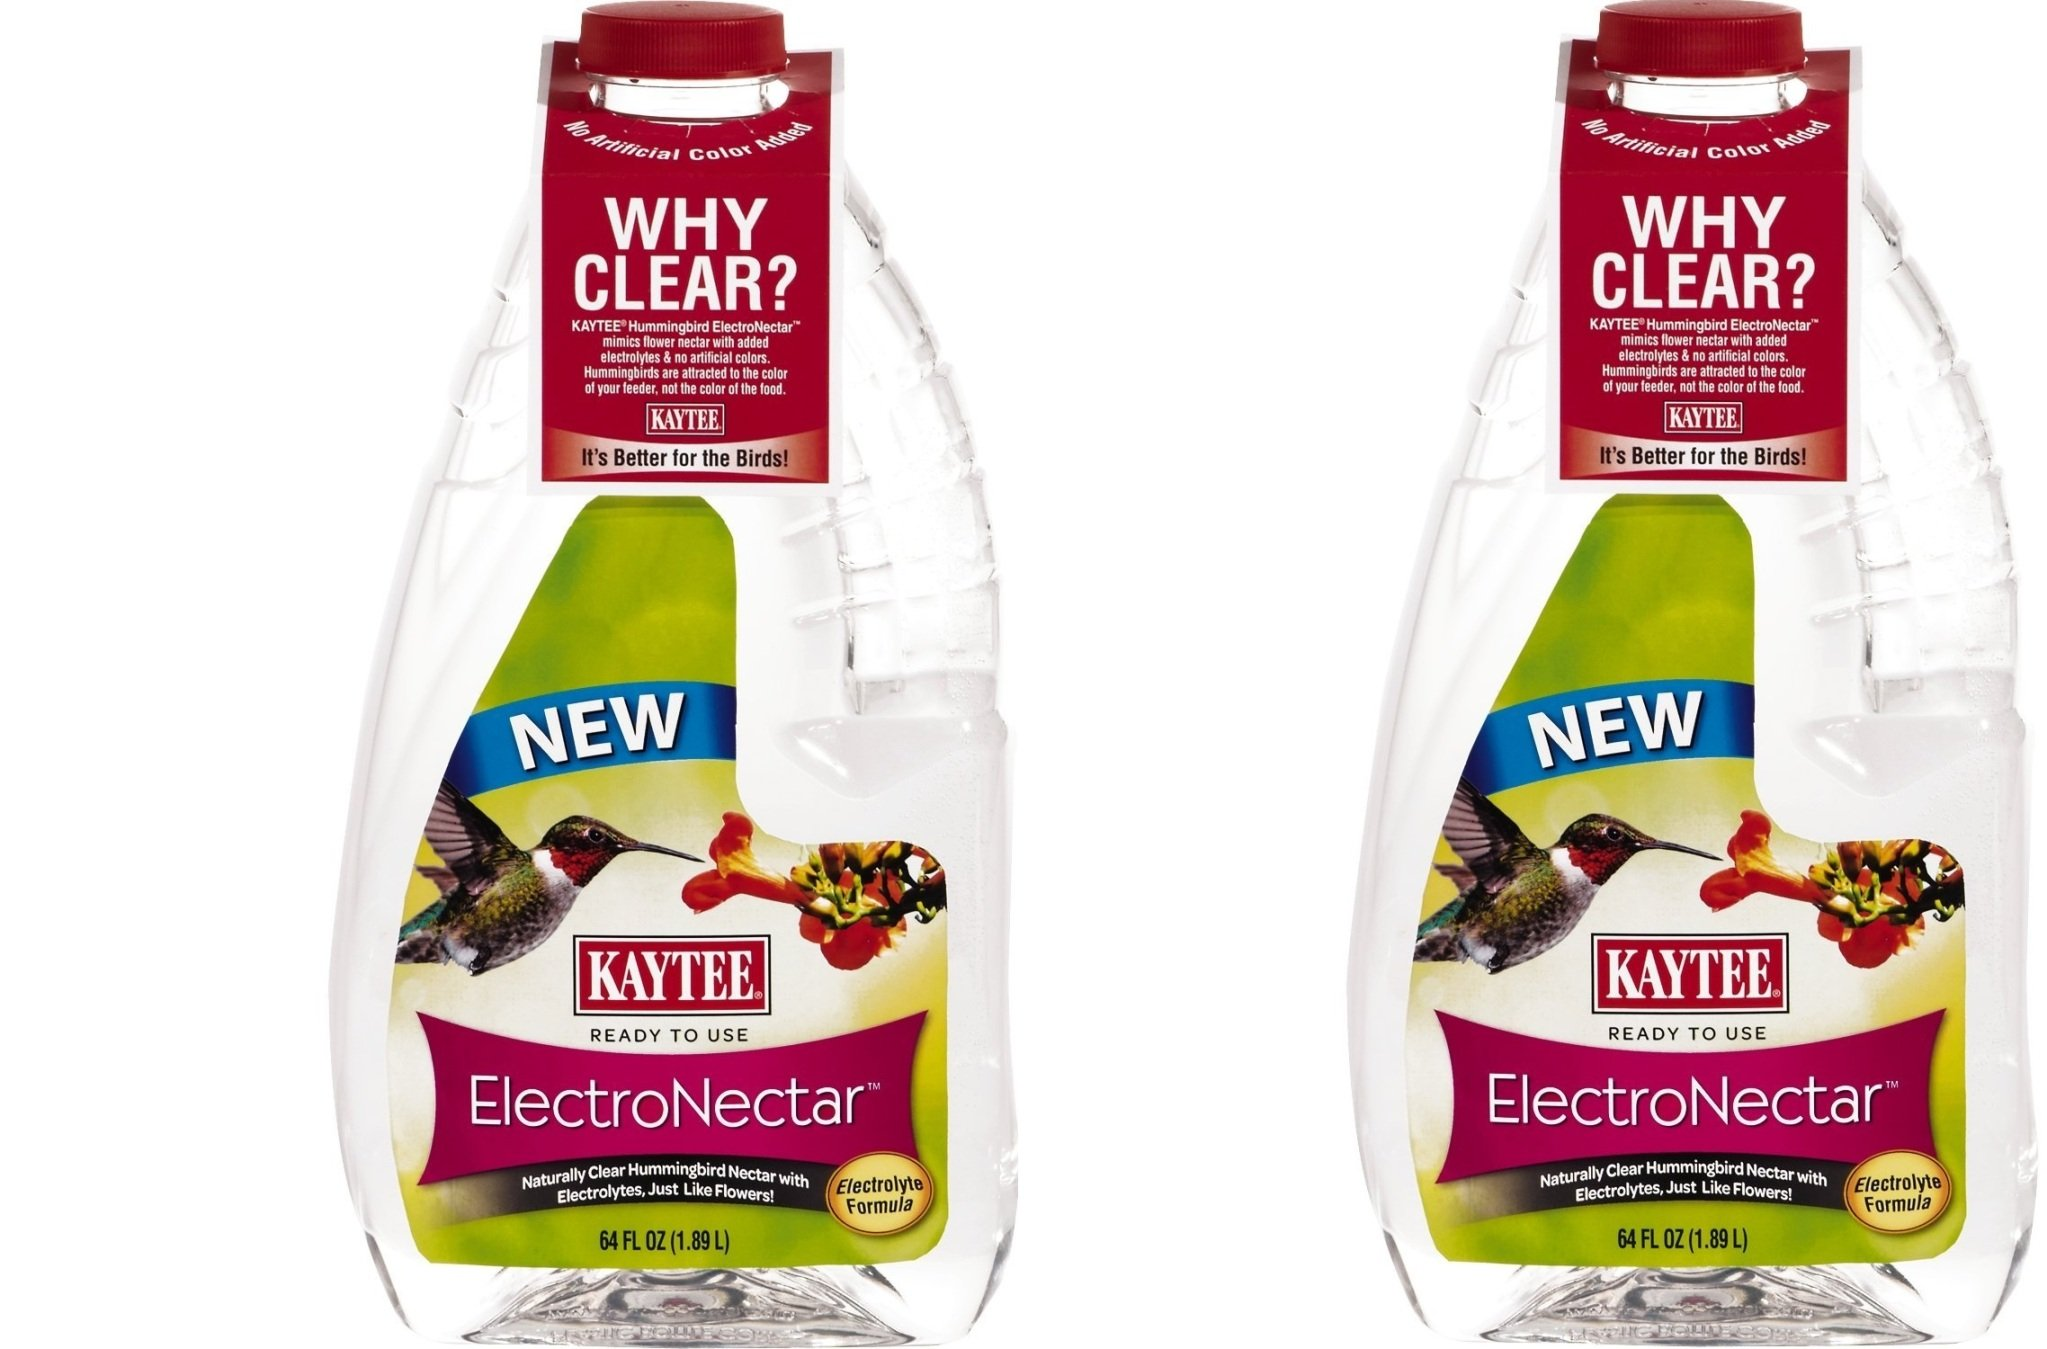 Kaytee Electro Nectar Ready to Use 64oz, dDJtdC 2Pack of 64oz